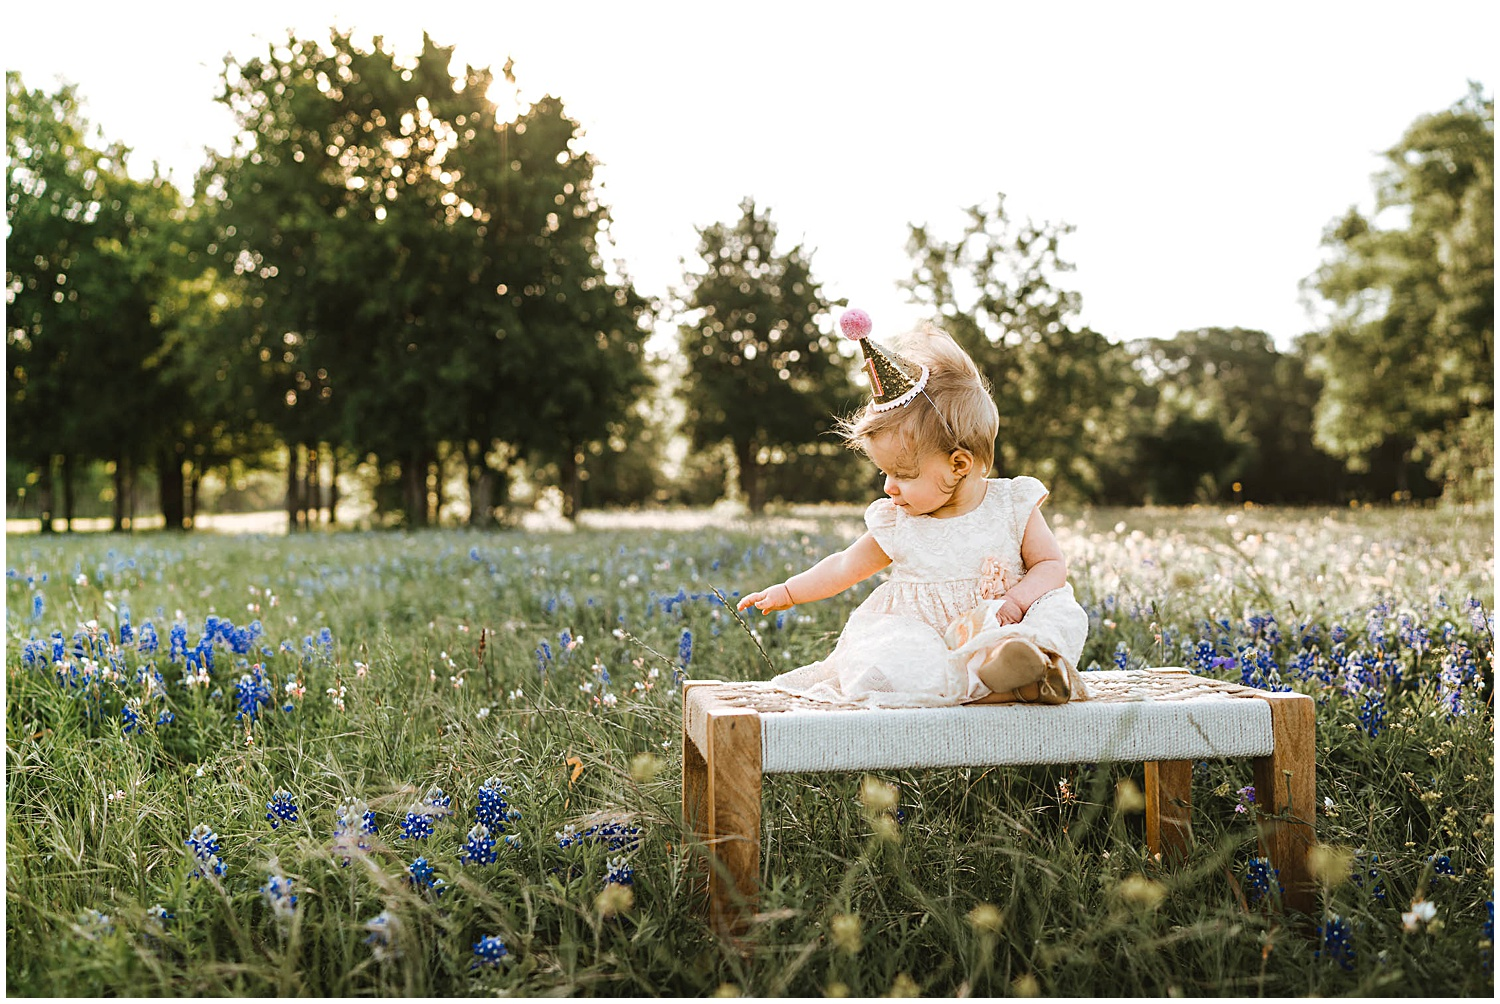 sunkissed family session in austin, tx